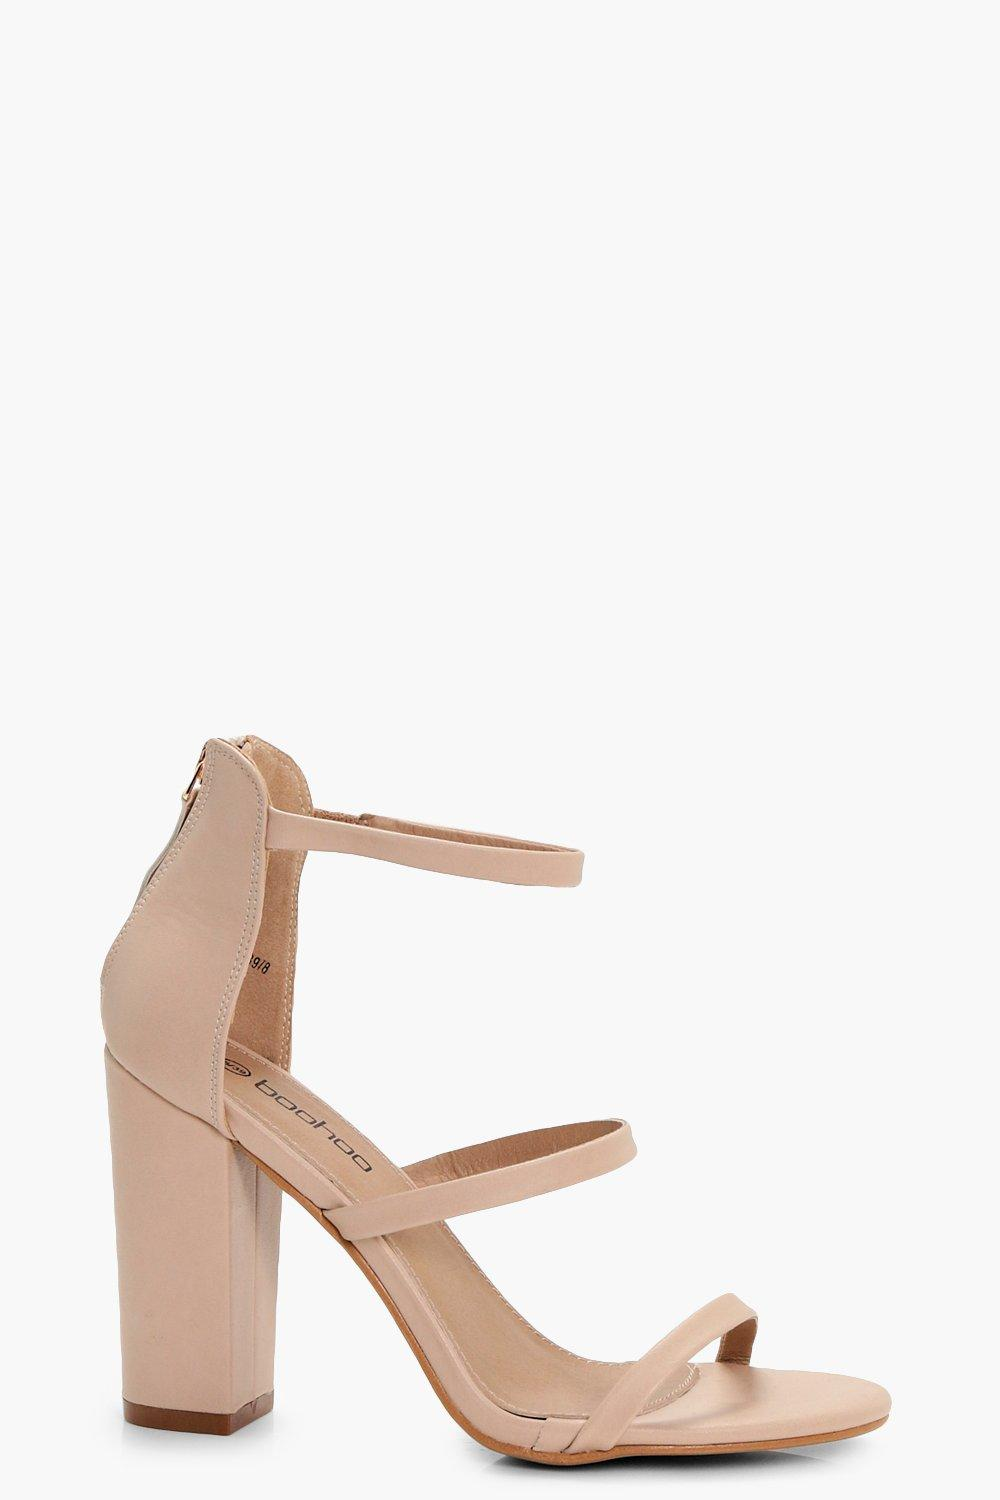 5ab67855419 Womens Nude 3 Part Block Heels. Hover to zoom